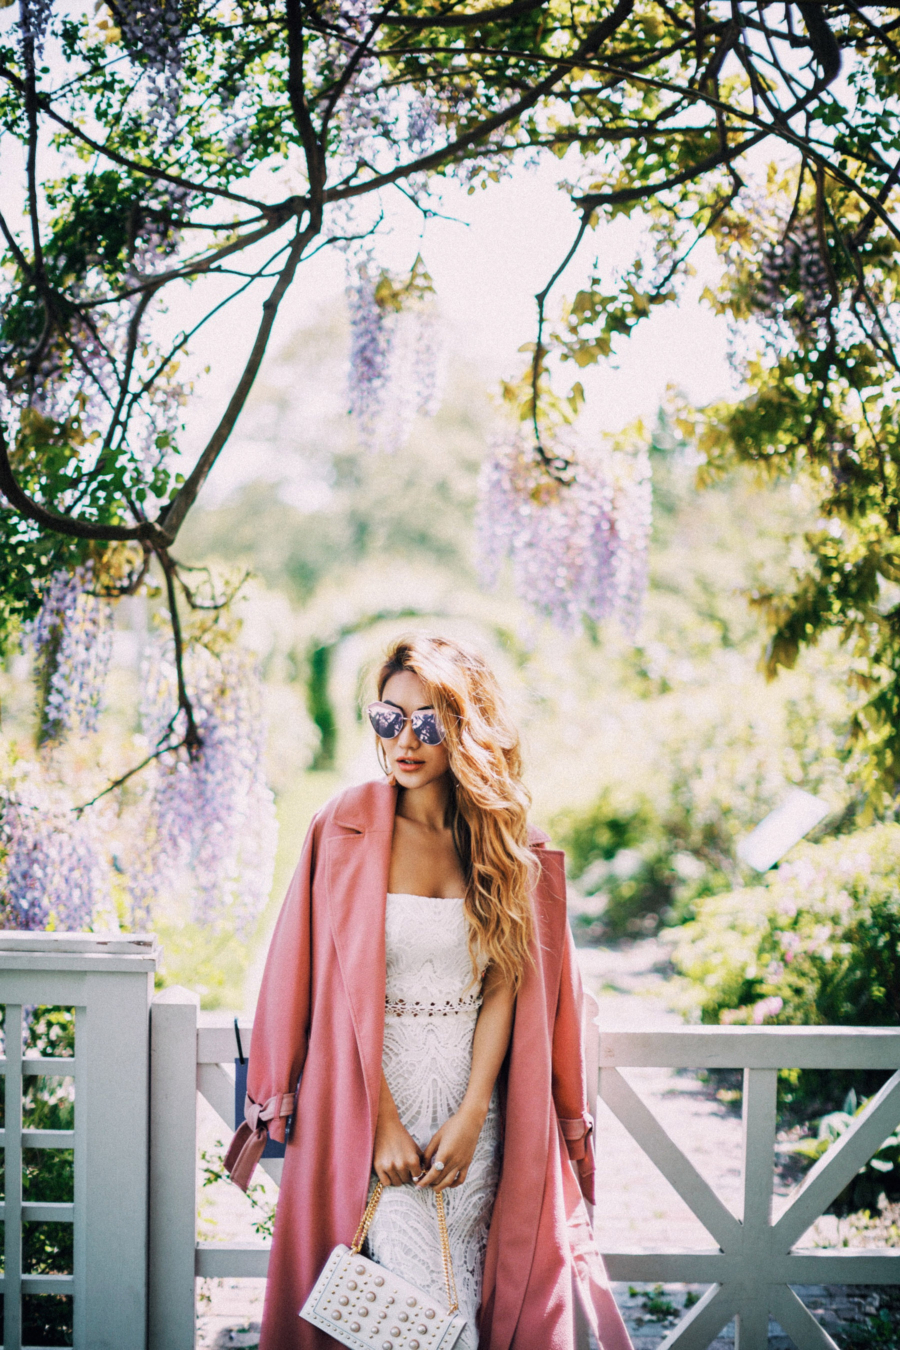 Pink White Outfit - 9 Fresh Ways To Style Your Favorite Trench Coat For Any Occasion This Spring // NotJessFashion.com